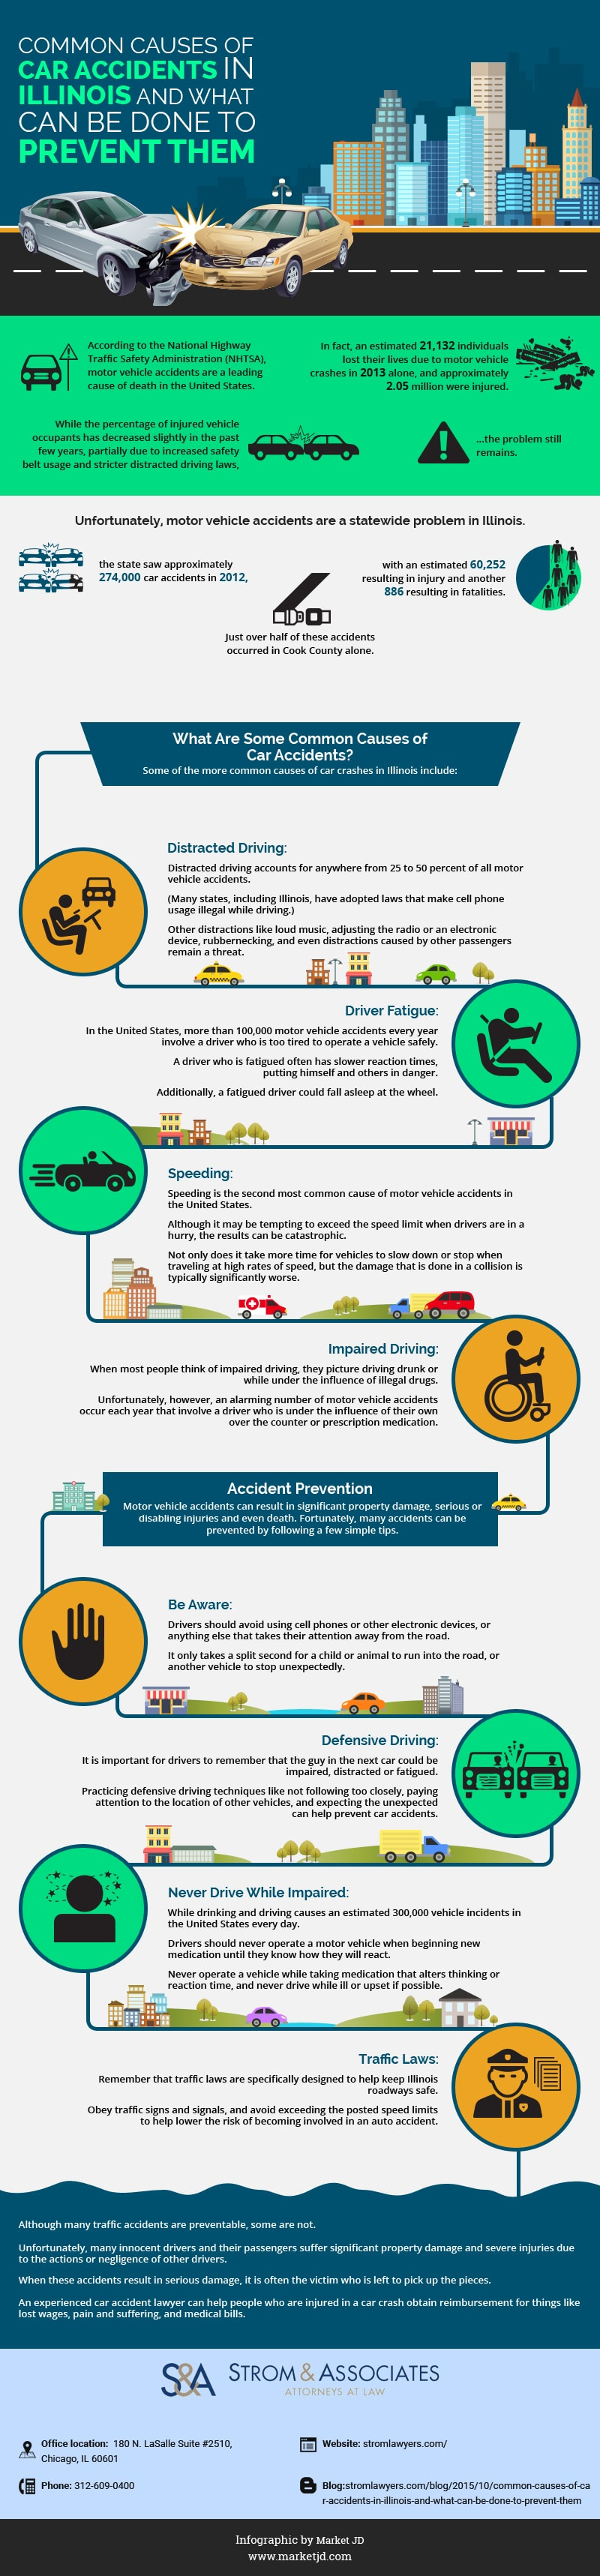 Causes of car accidents infographic